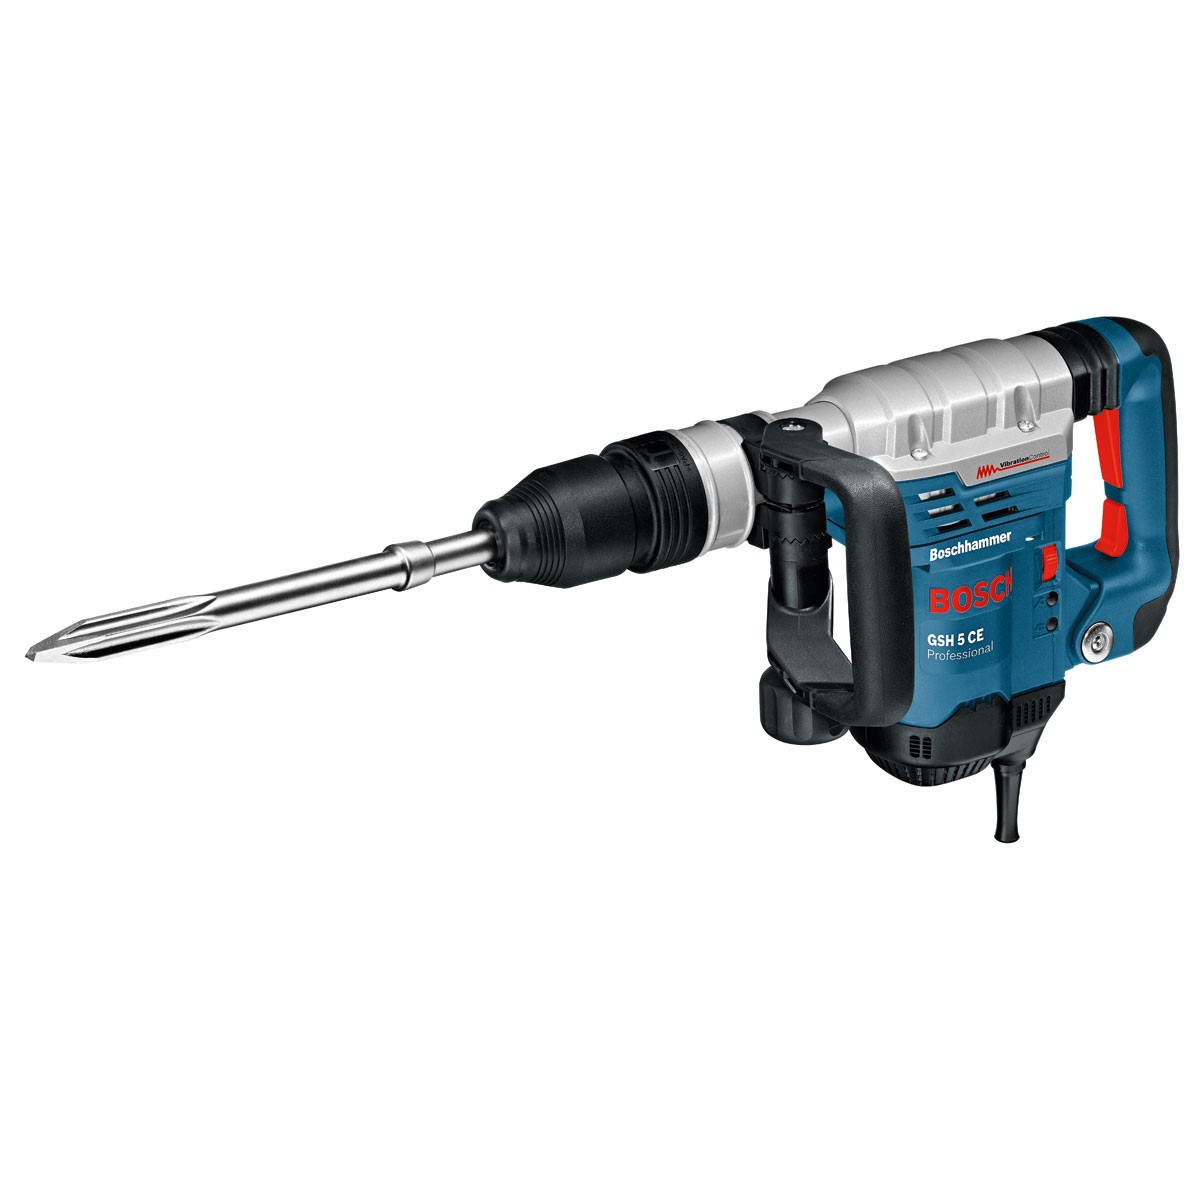 Bosch GSH 5 CE Demolition Hammer with SDS Max